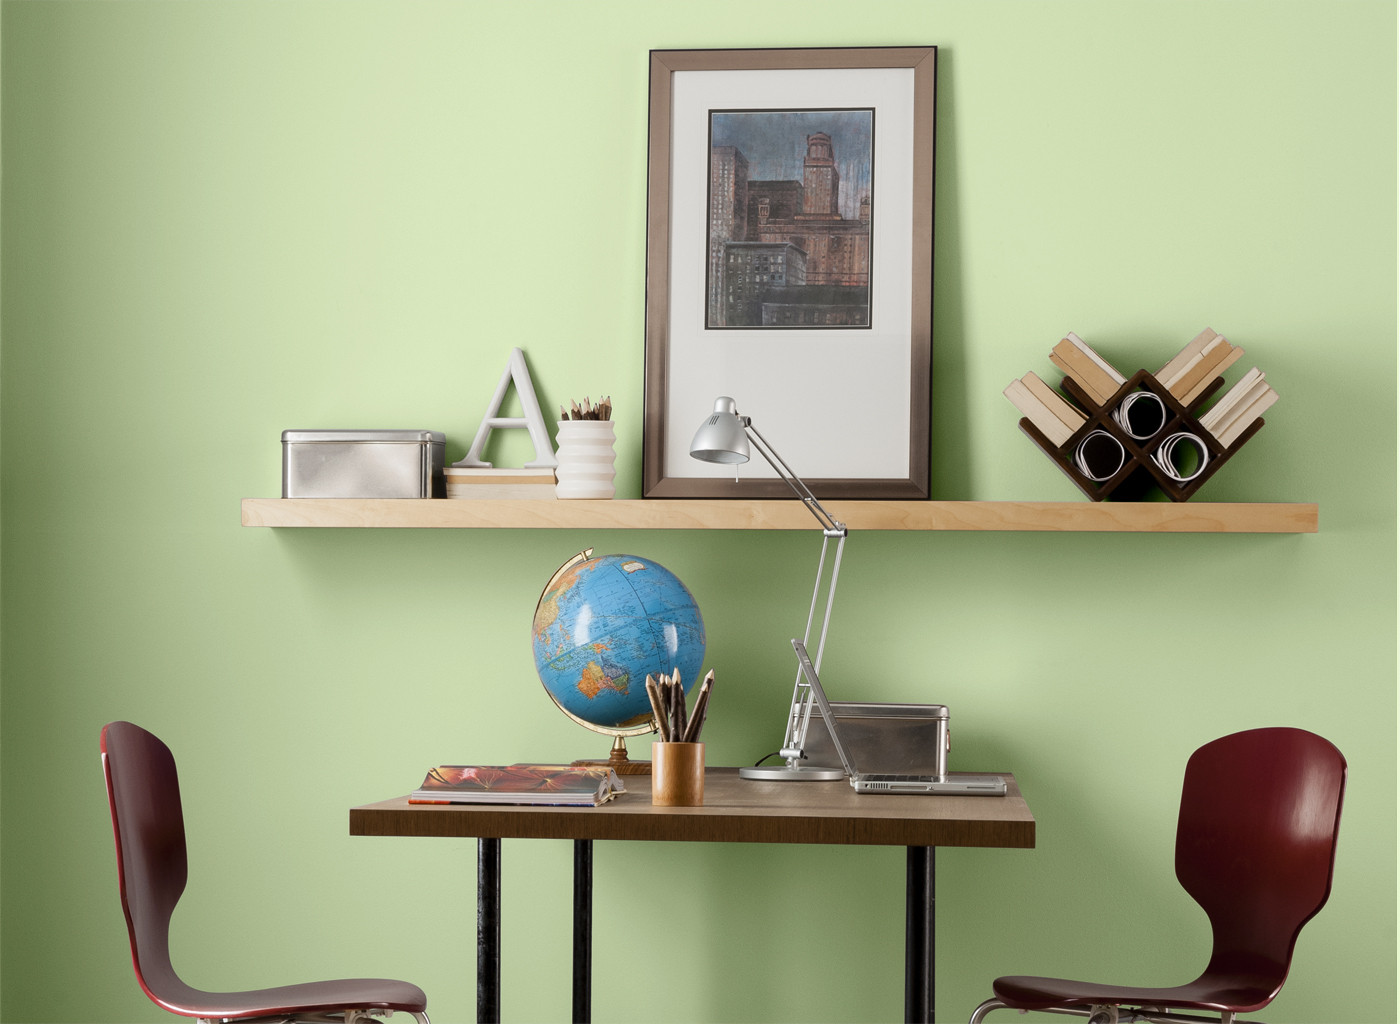 Best ideas about Glidden Paint Colors . Save or Pin Glidden Interior Paint Color Chart Now.